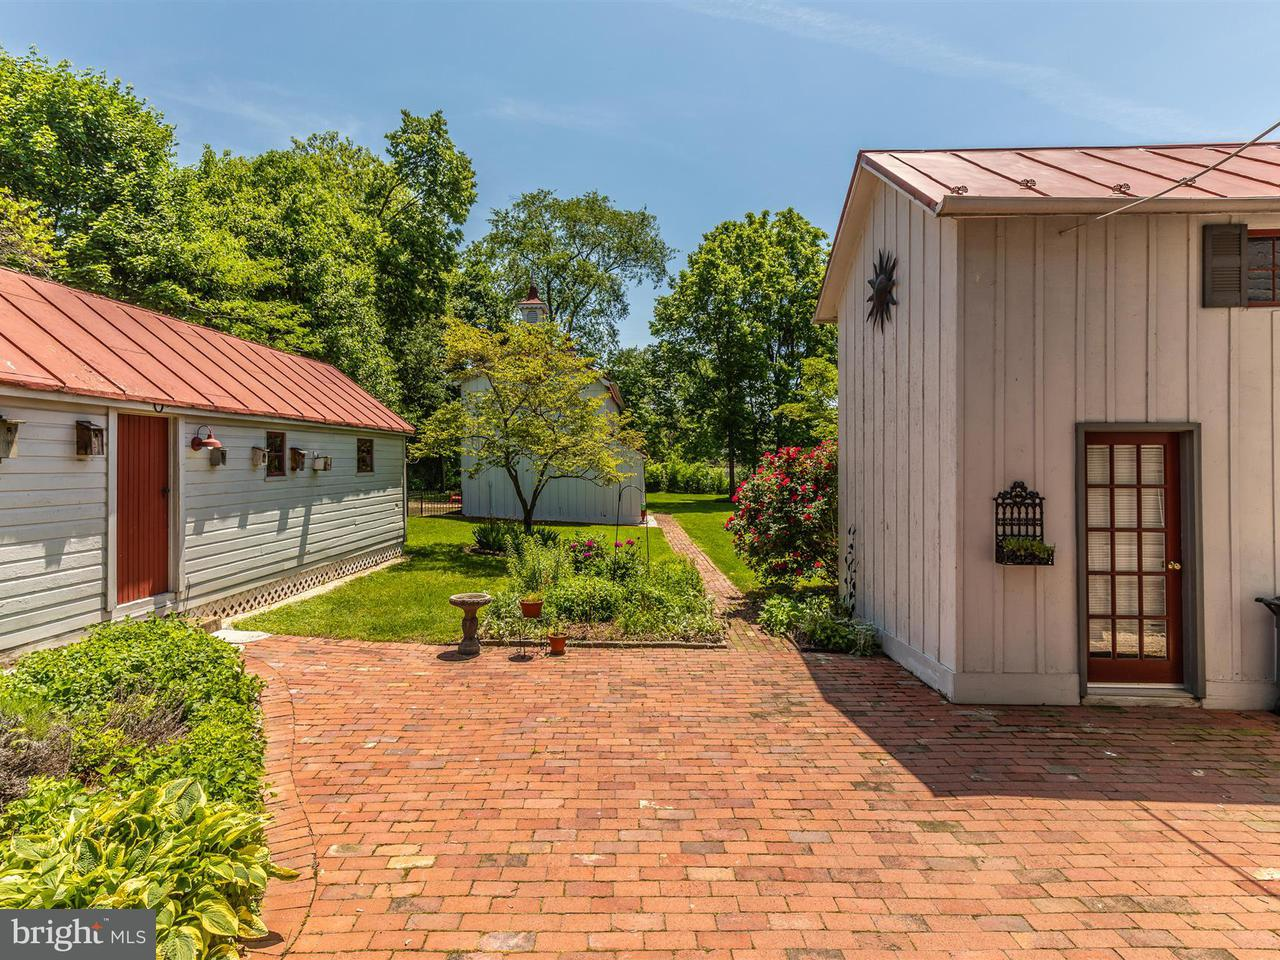 Additional photo for property listing at 20 PENNSYLVANIA AVE W 20 PENNSYLVANIA AVE W Walkersville, Maryland 21793 Estados Unidos